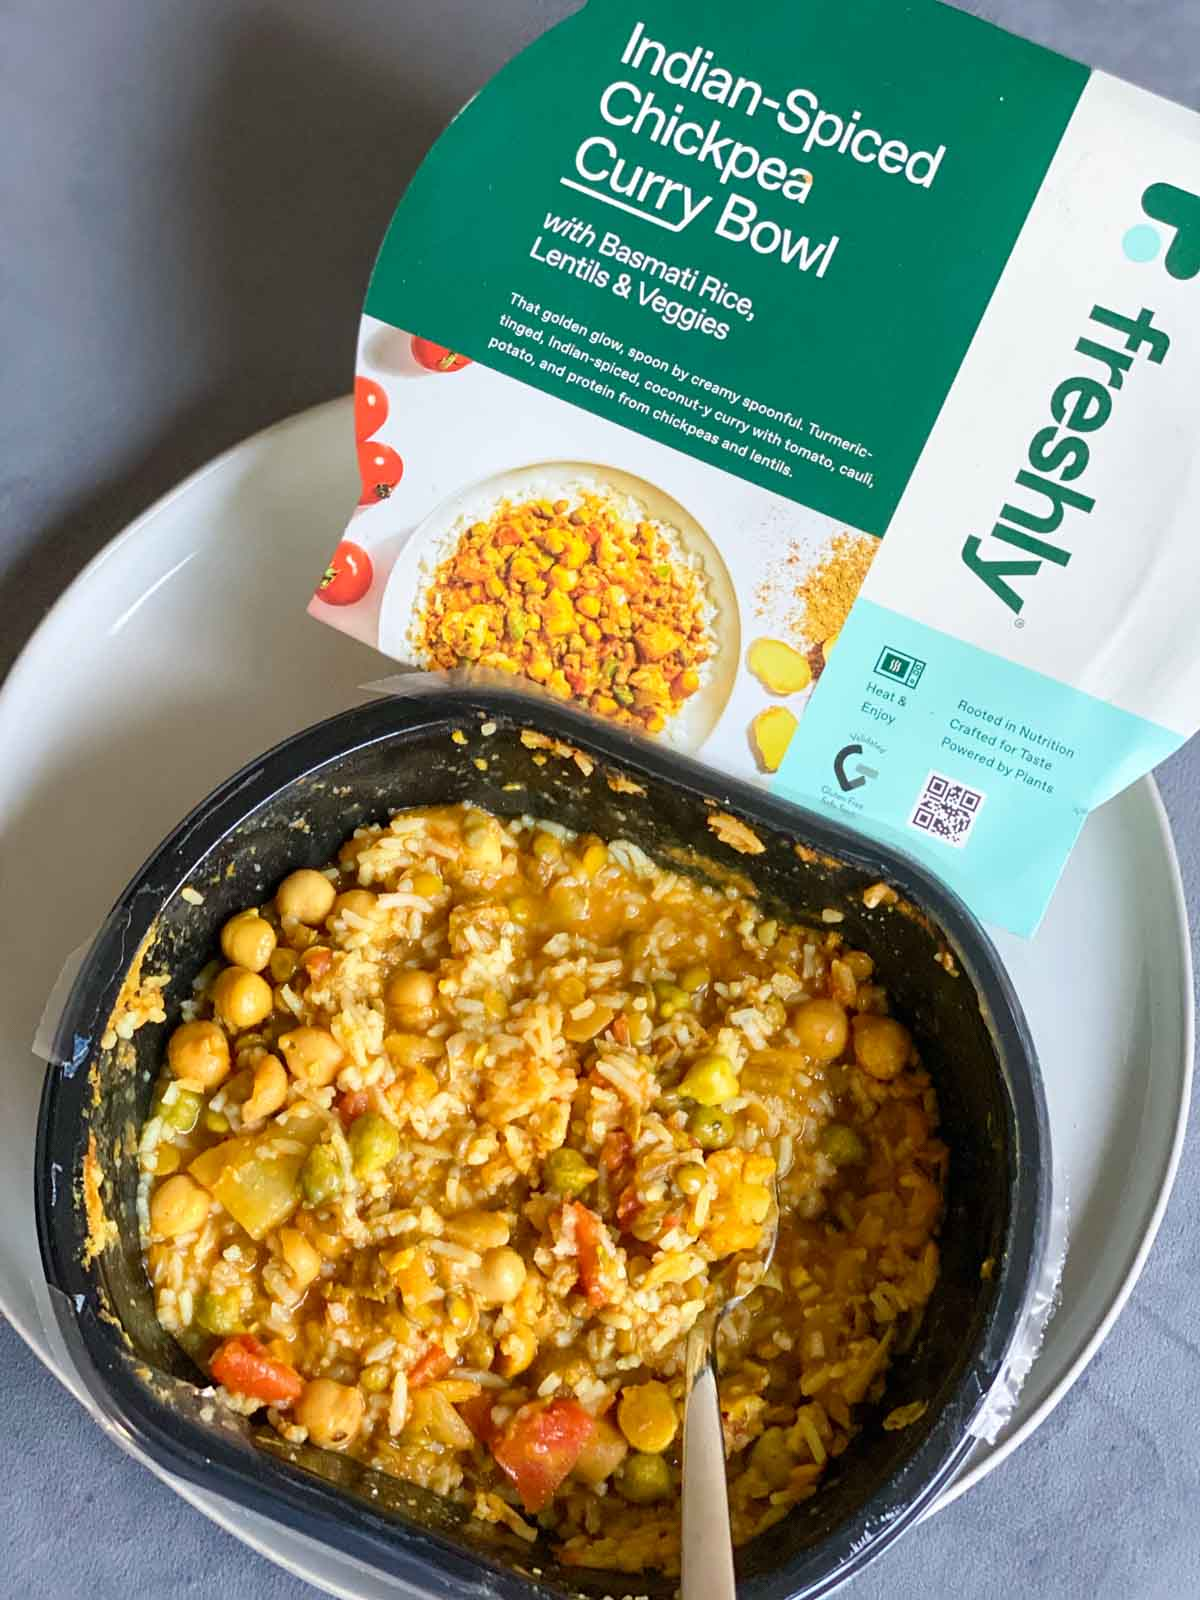 Freshly Indian-spcied chickpea curry bowl